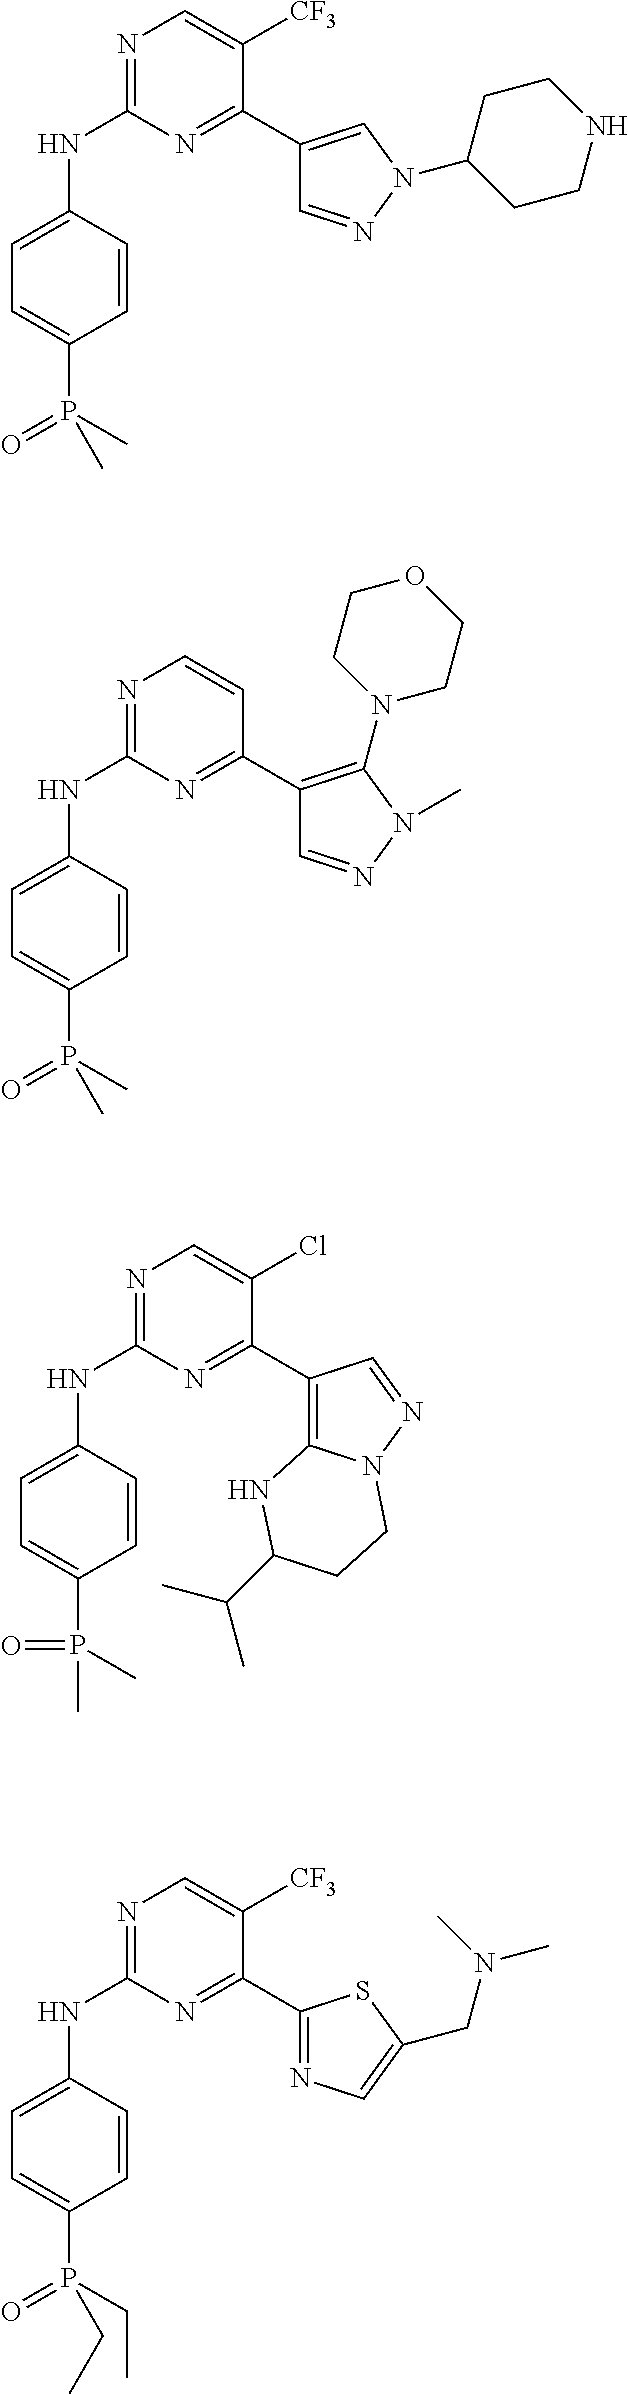 US9012462B2 - Phosphorous derivatives as kinase inhibitors